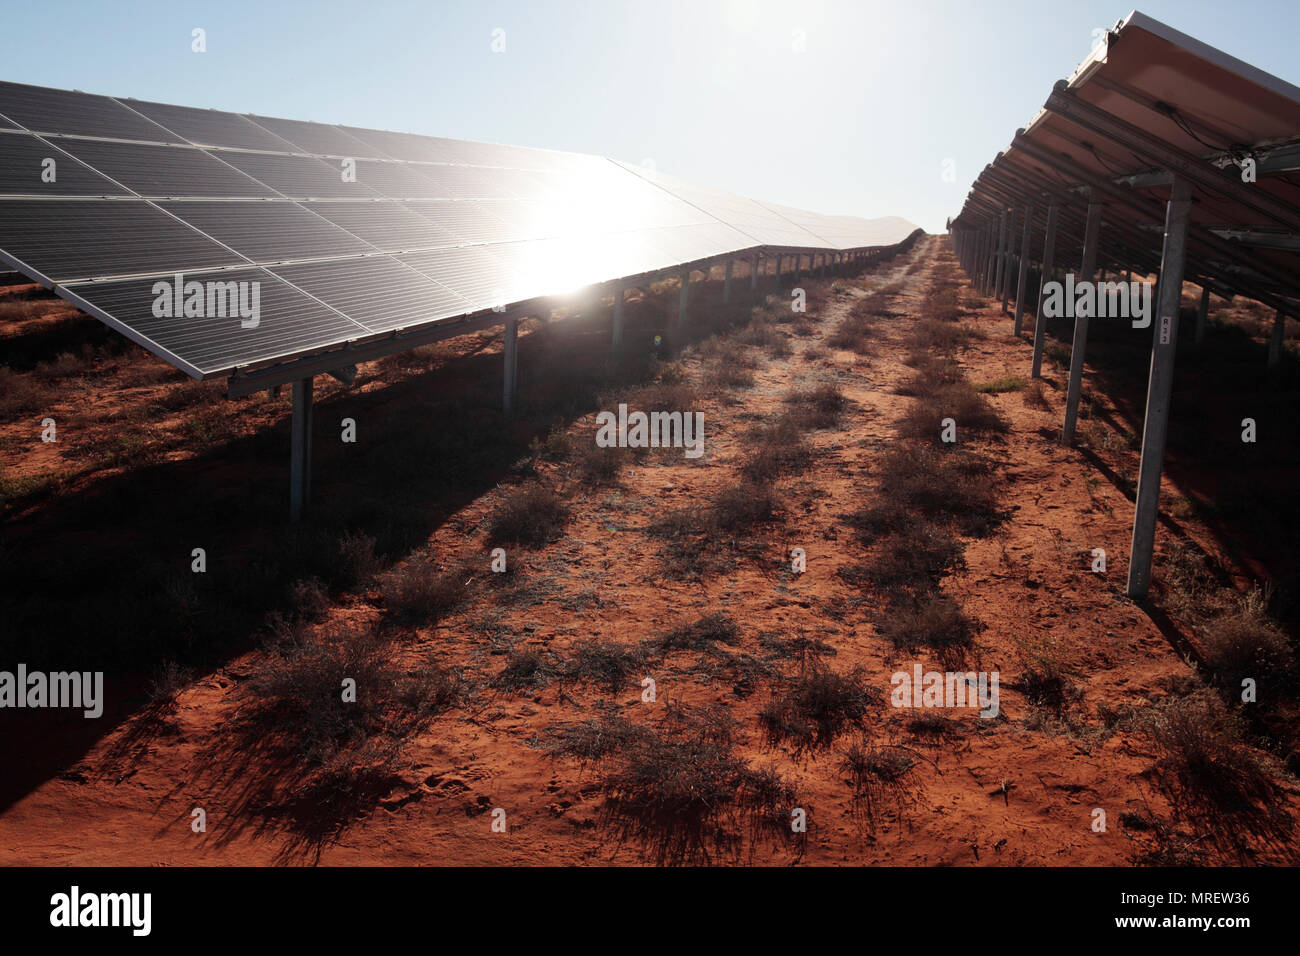 10 MW solar power plant, Vredendal, Western Cape, South Africa. - Stock Image